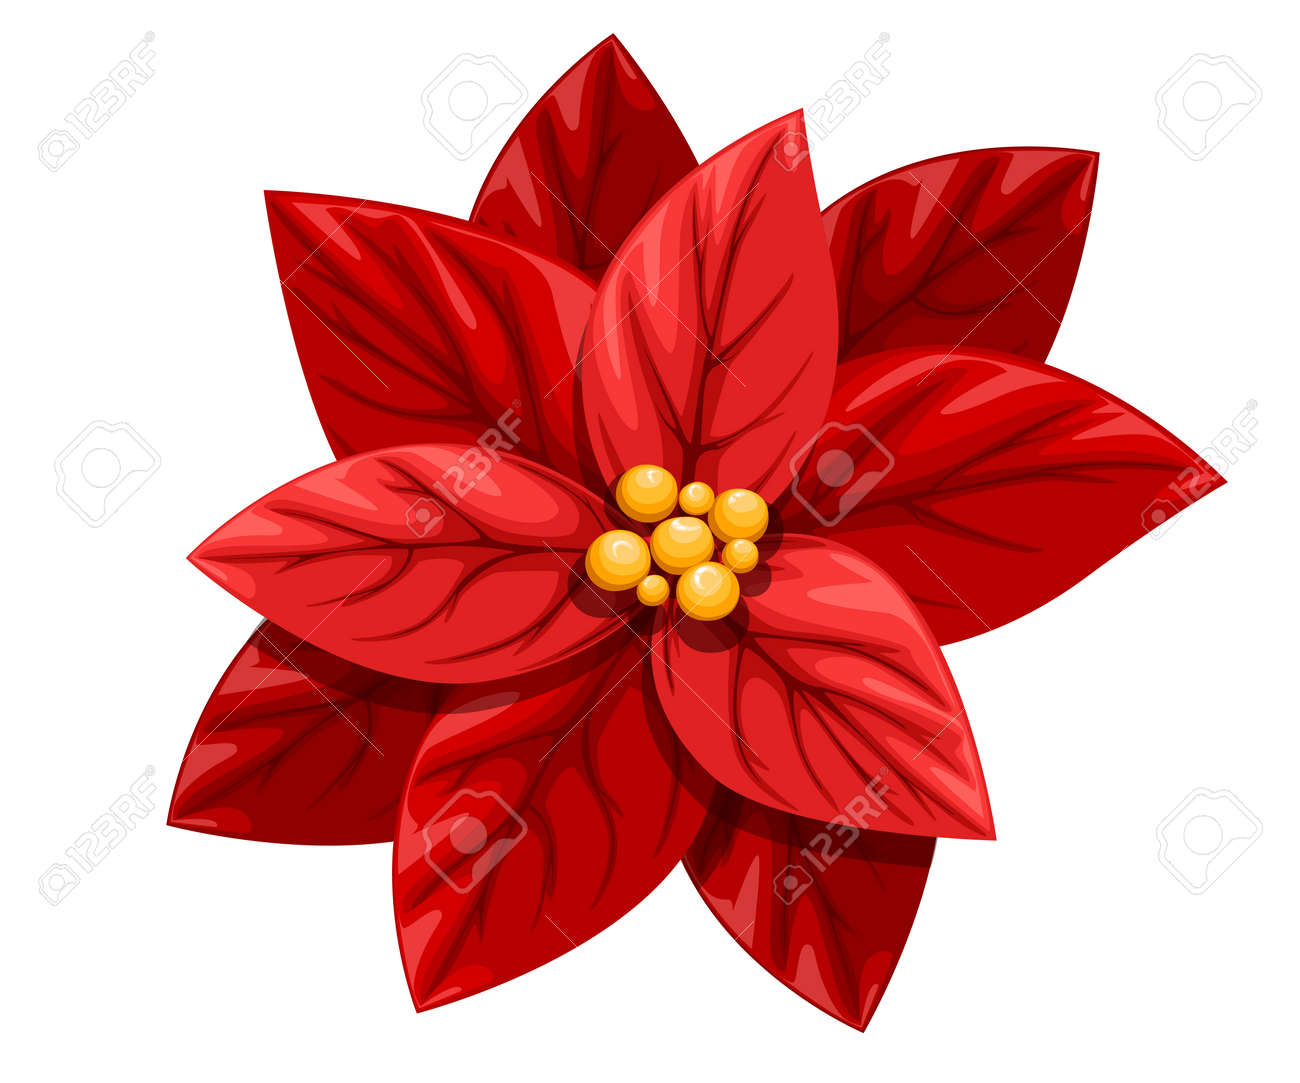 Beautiful Red Poinsettia Flower Christmas Decoration Christmas Royalty Free Cliparts Vectors And Stock Illustration Image 91002583